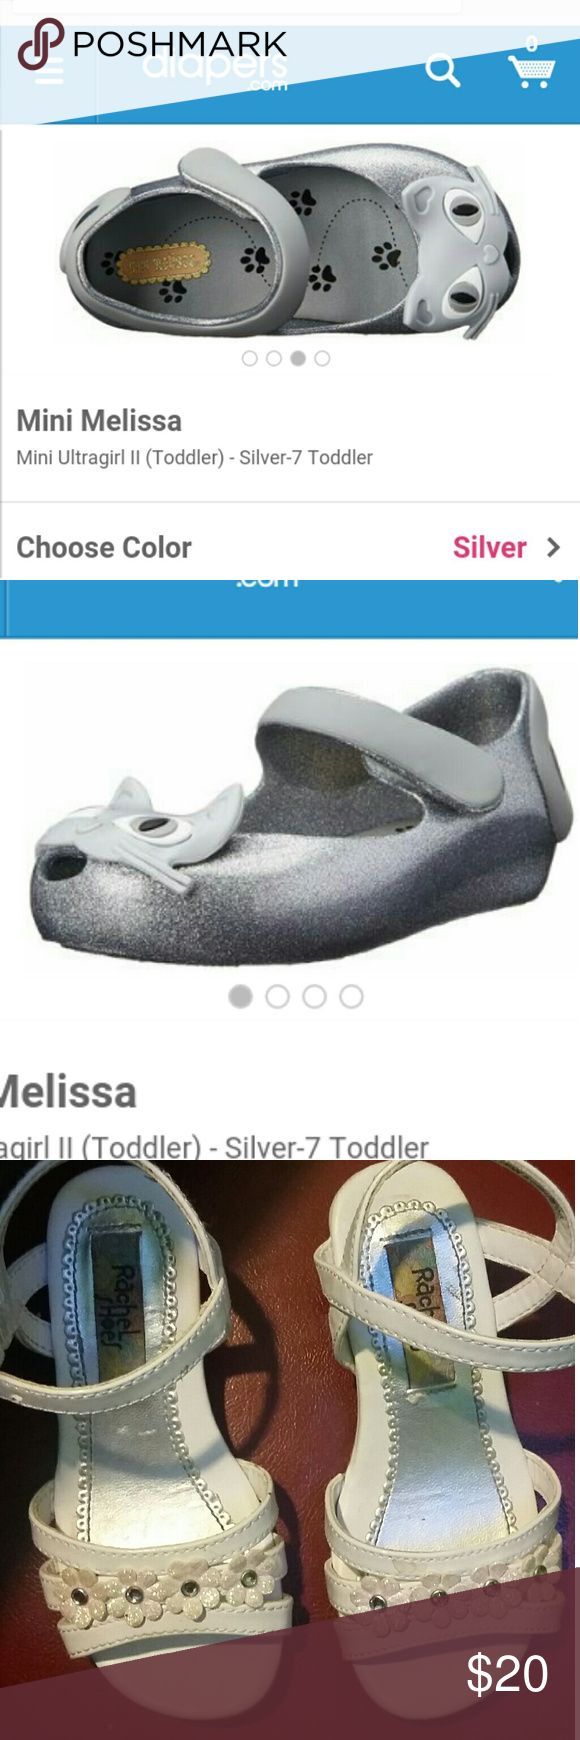 Silver cat Mini Melissa's & White Easter Sandals Size 8. Like New!! No signs of wear Mini Melissa Shoes Sandals & Flip Flops